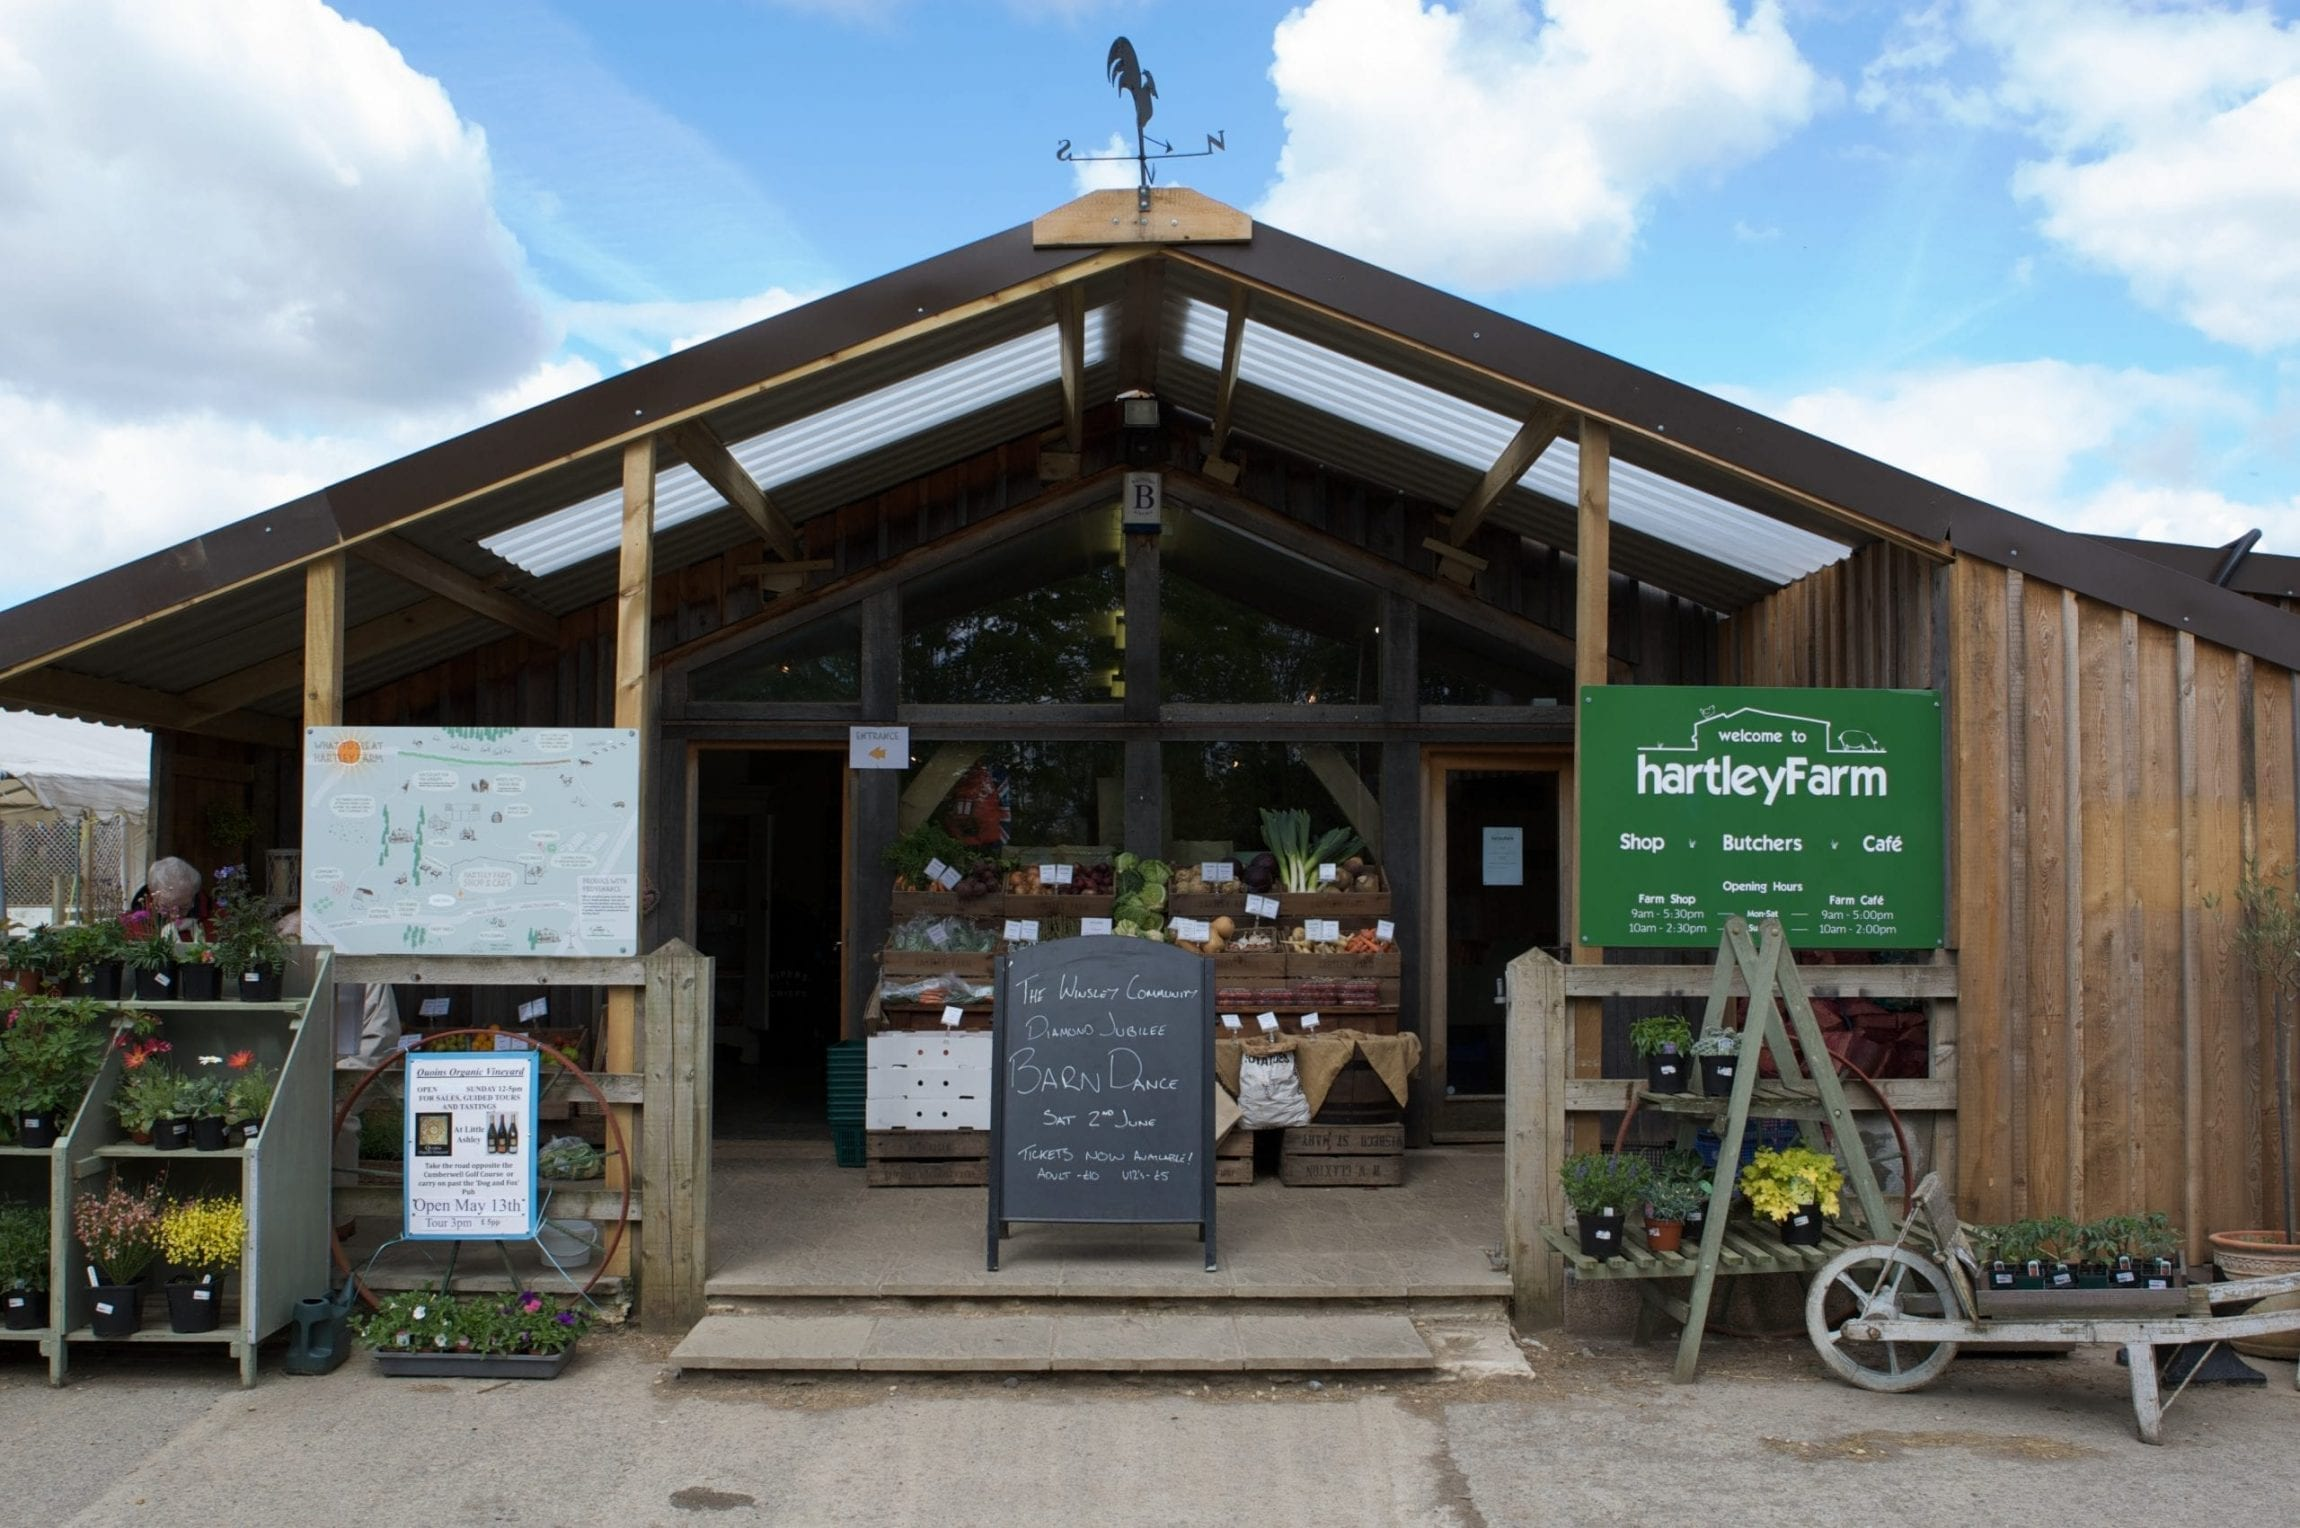 Hartley Farm Shop